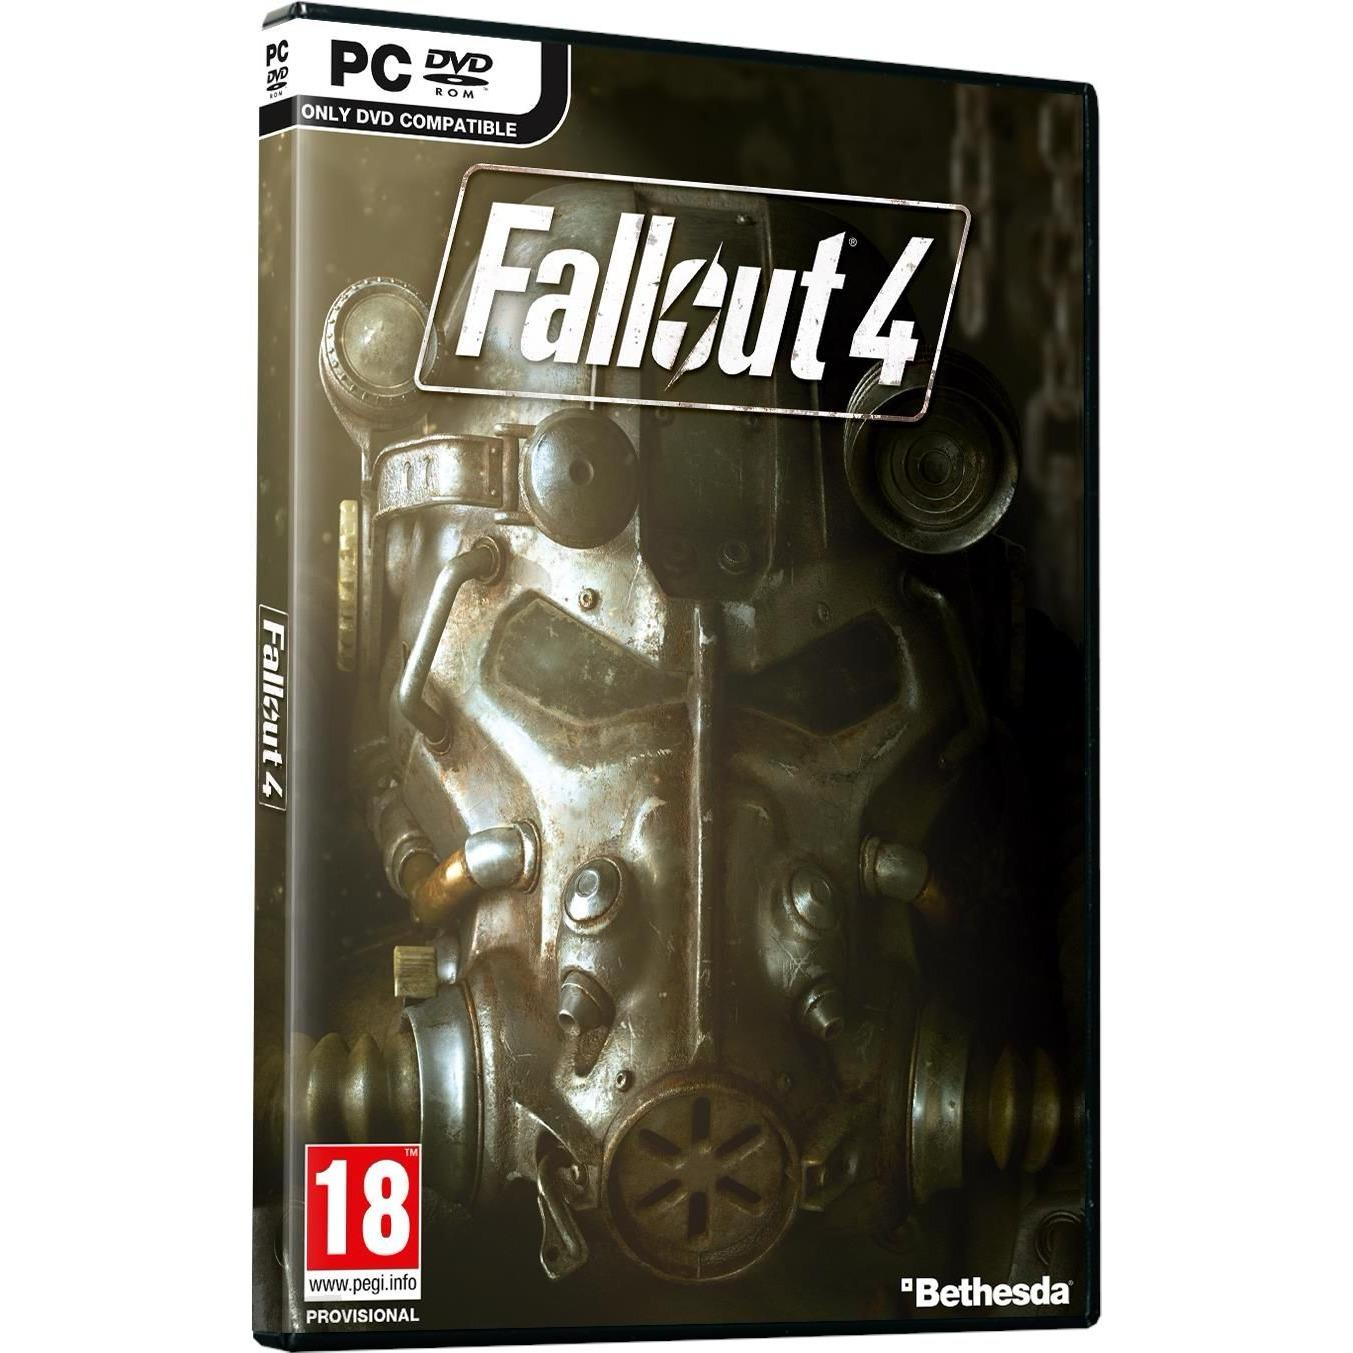 Fallout 4 full Game PC (PC GAMES/DVD GAME PC)